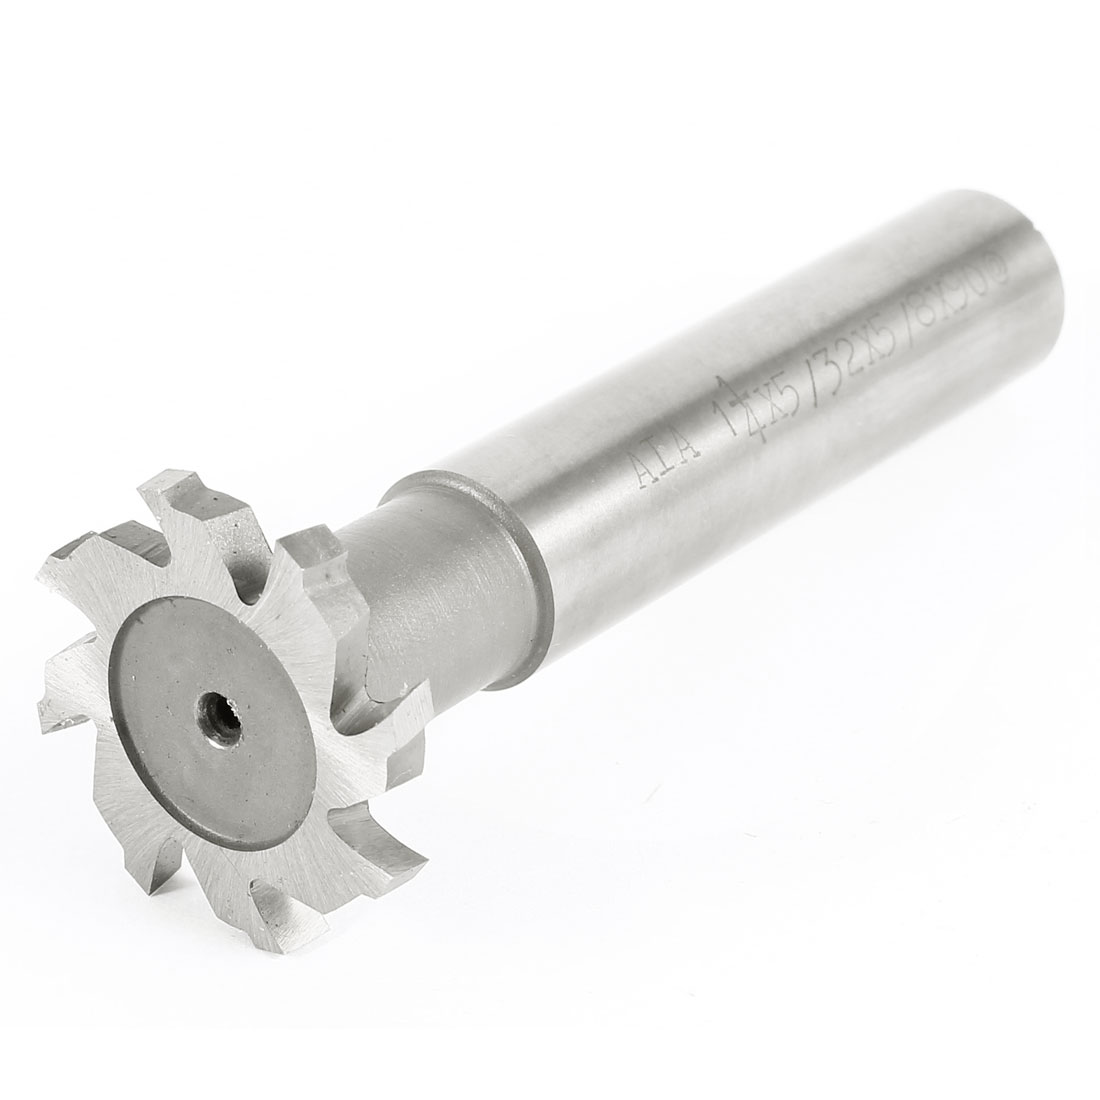 Hardware Milling Cutter 4mm Depth 32mm Cutting Dia 8 Flutes HSS T Slot End Mill